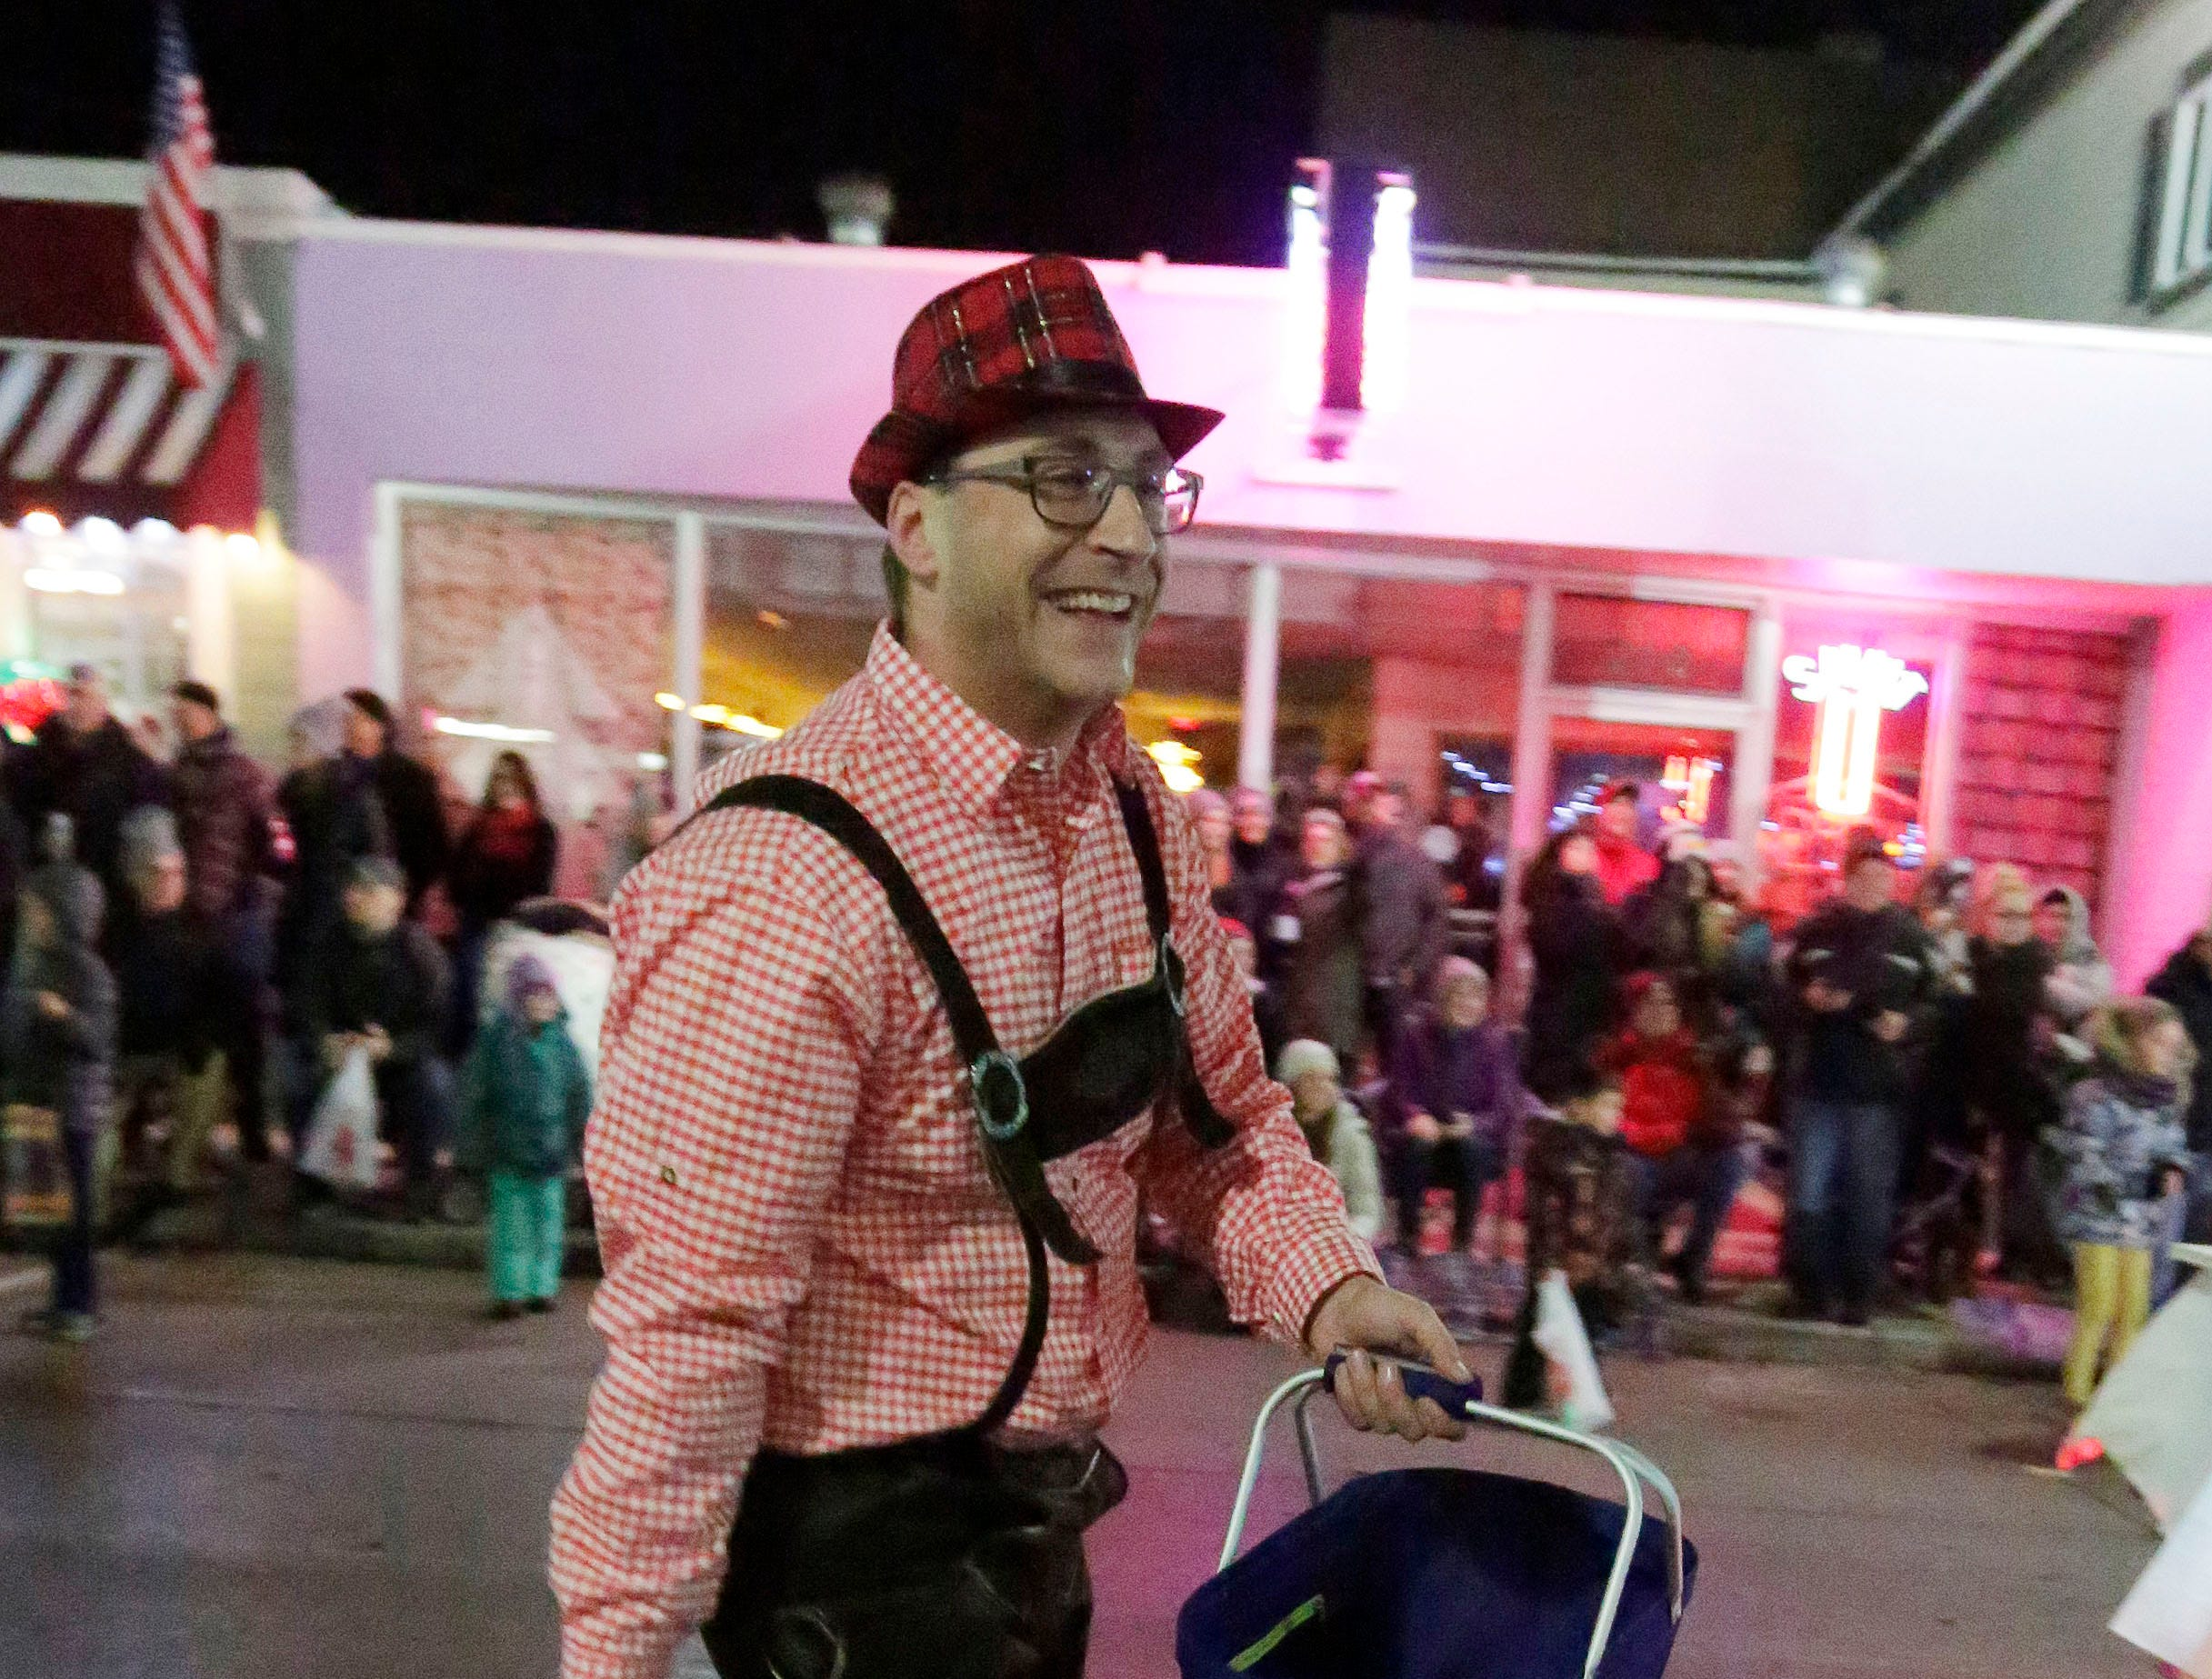 A man wearing lederhosen tosses string cheese to people along the Plymouth Christmas Parade route, Friday, November 23, 2018, in Plymouth, Wis.